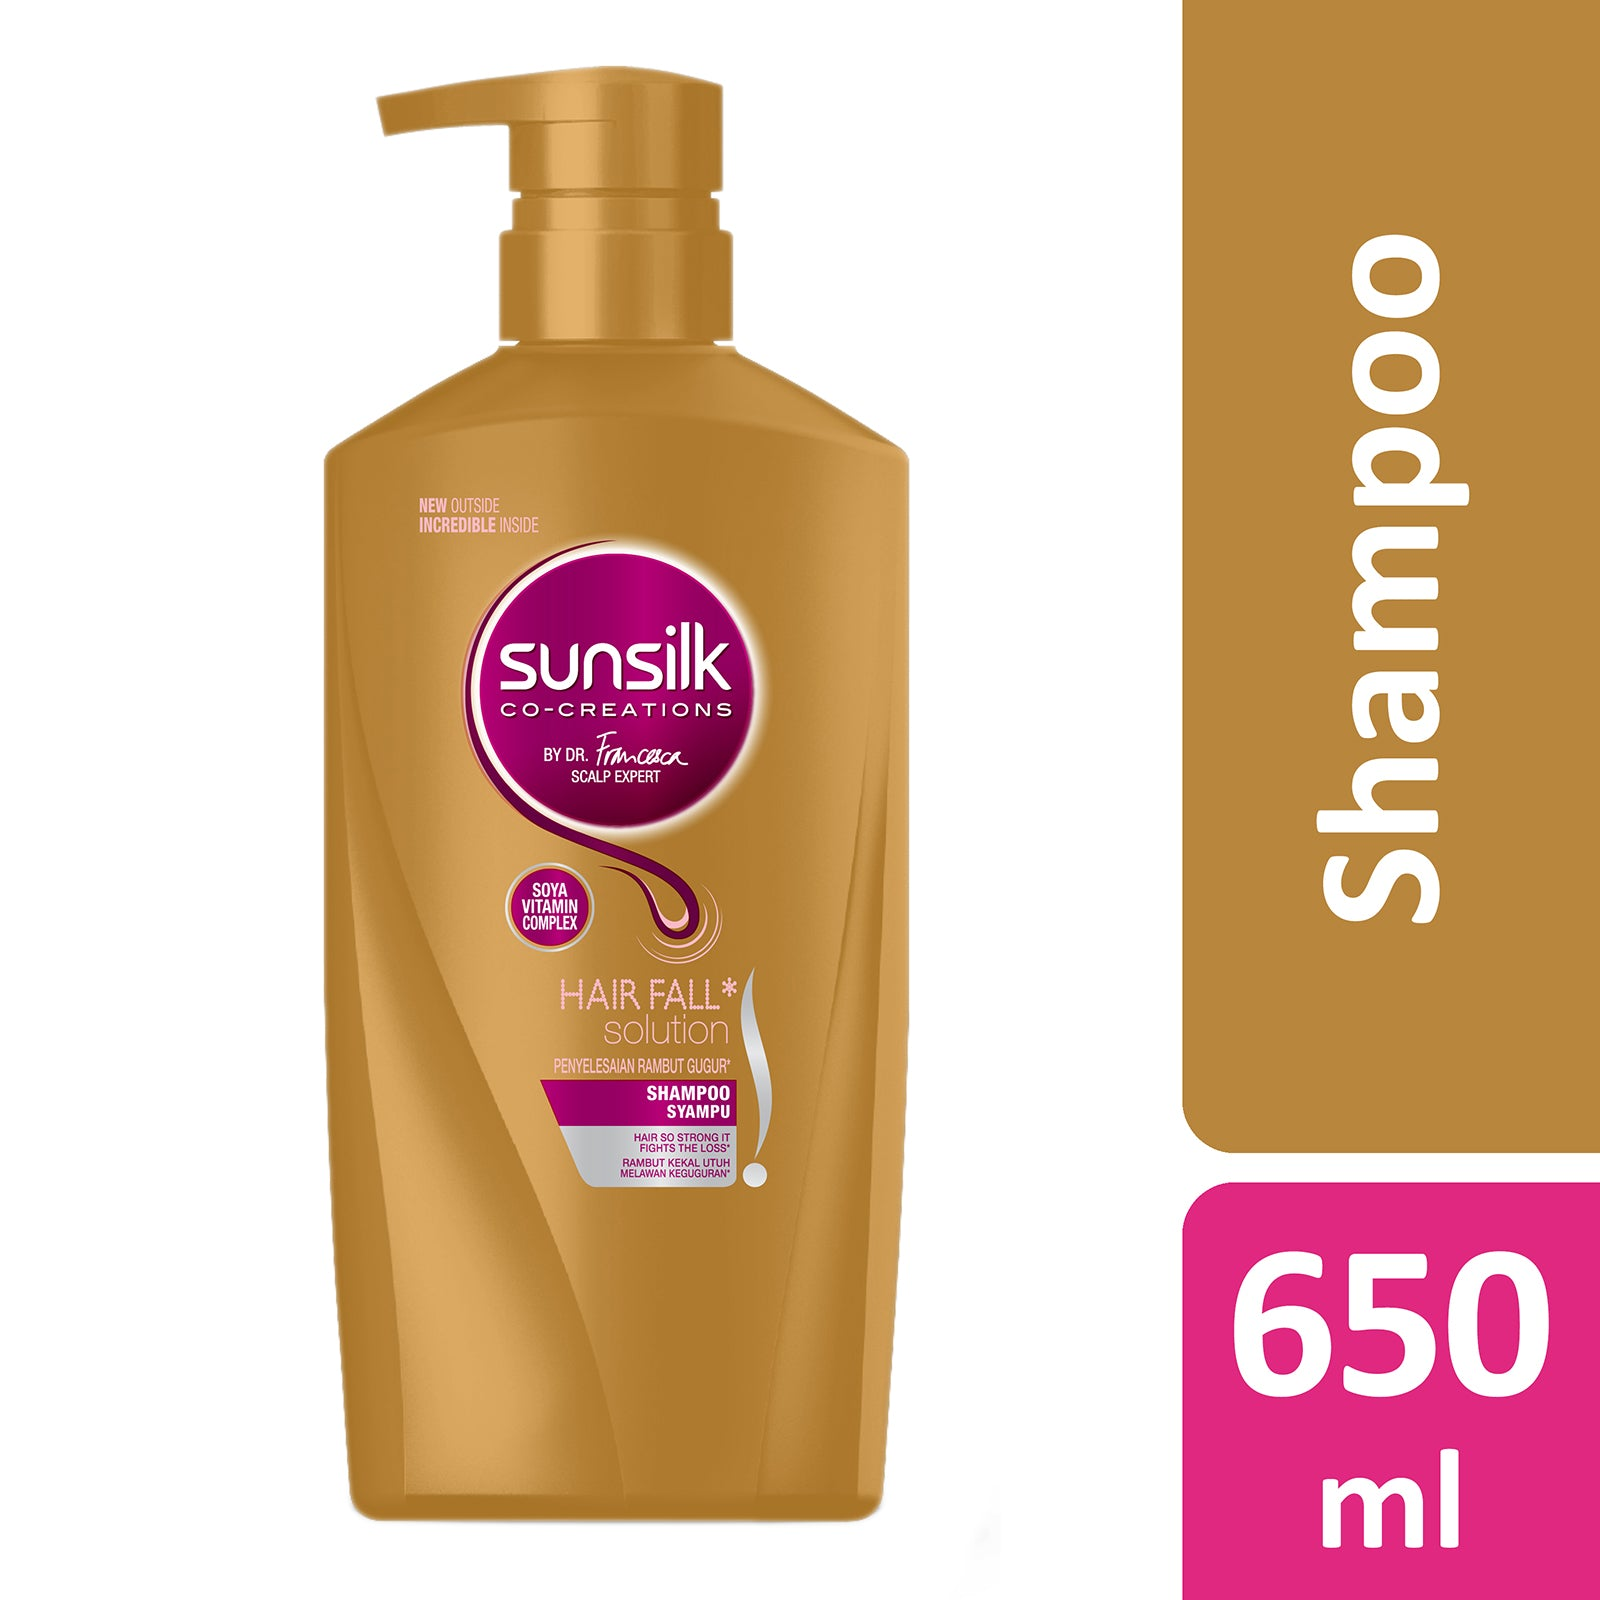 Sunsilk Hair Fall Solution Shampoo 650 ml